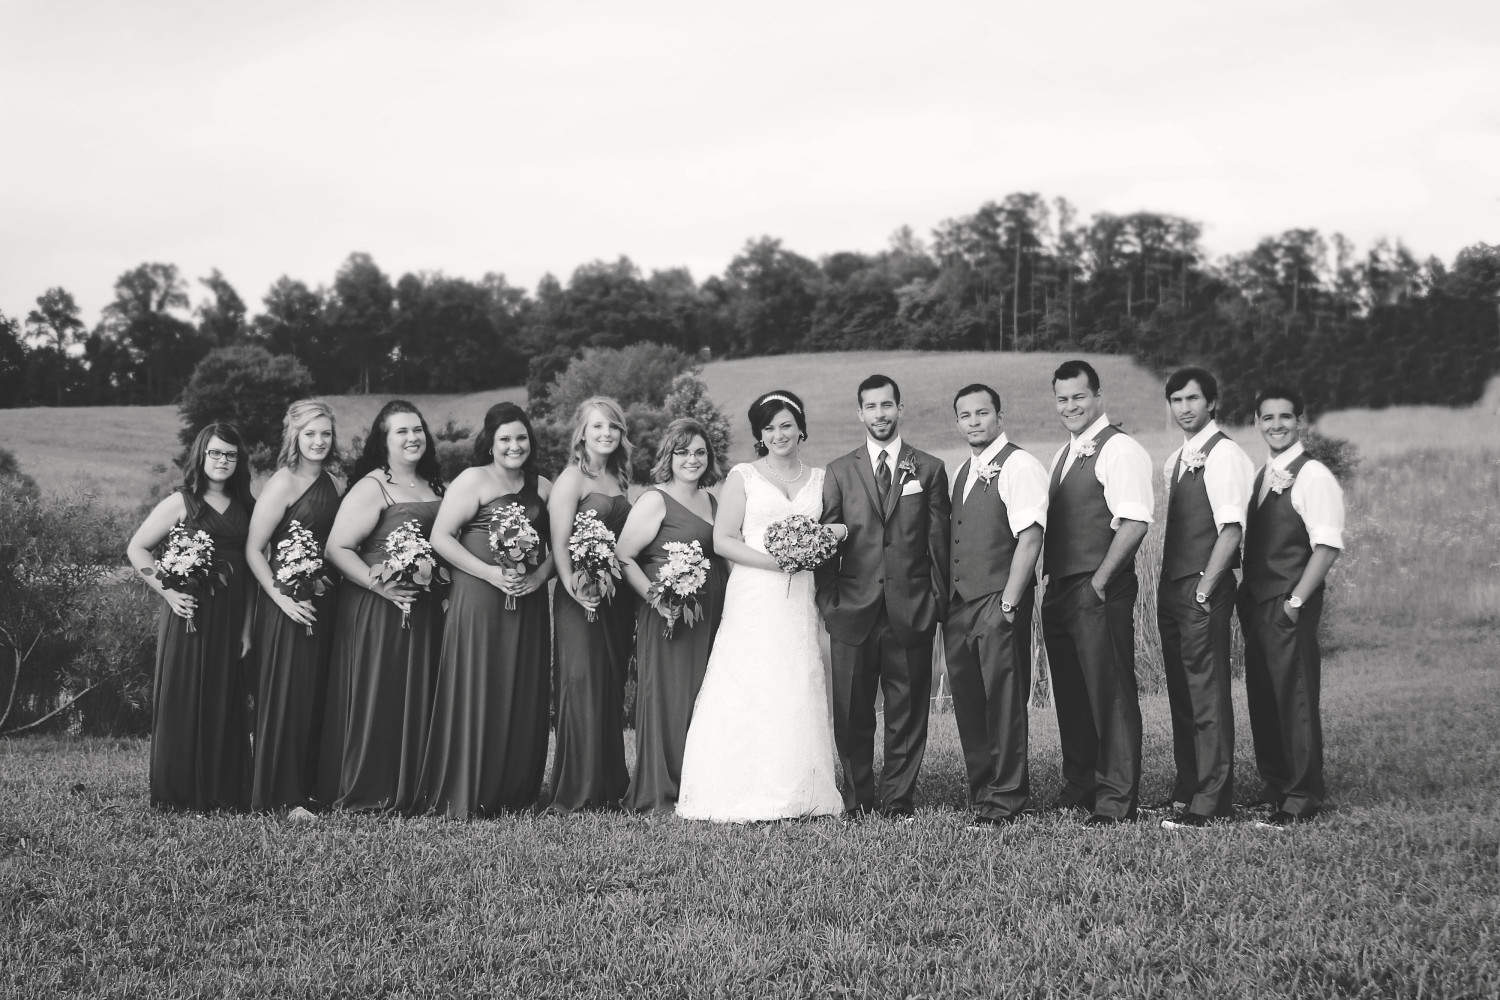 View More: http://amberhobbsphotography.pass.us/medina-formals